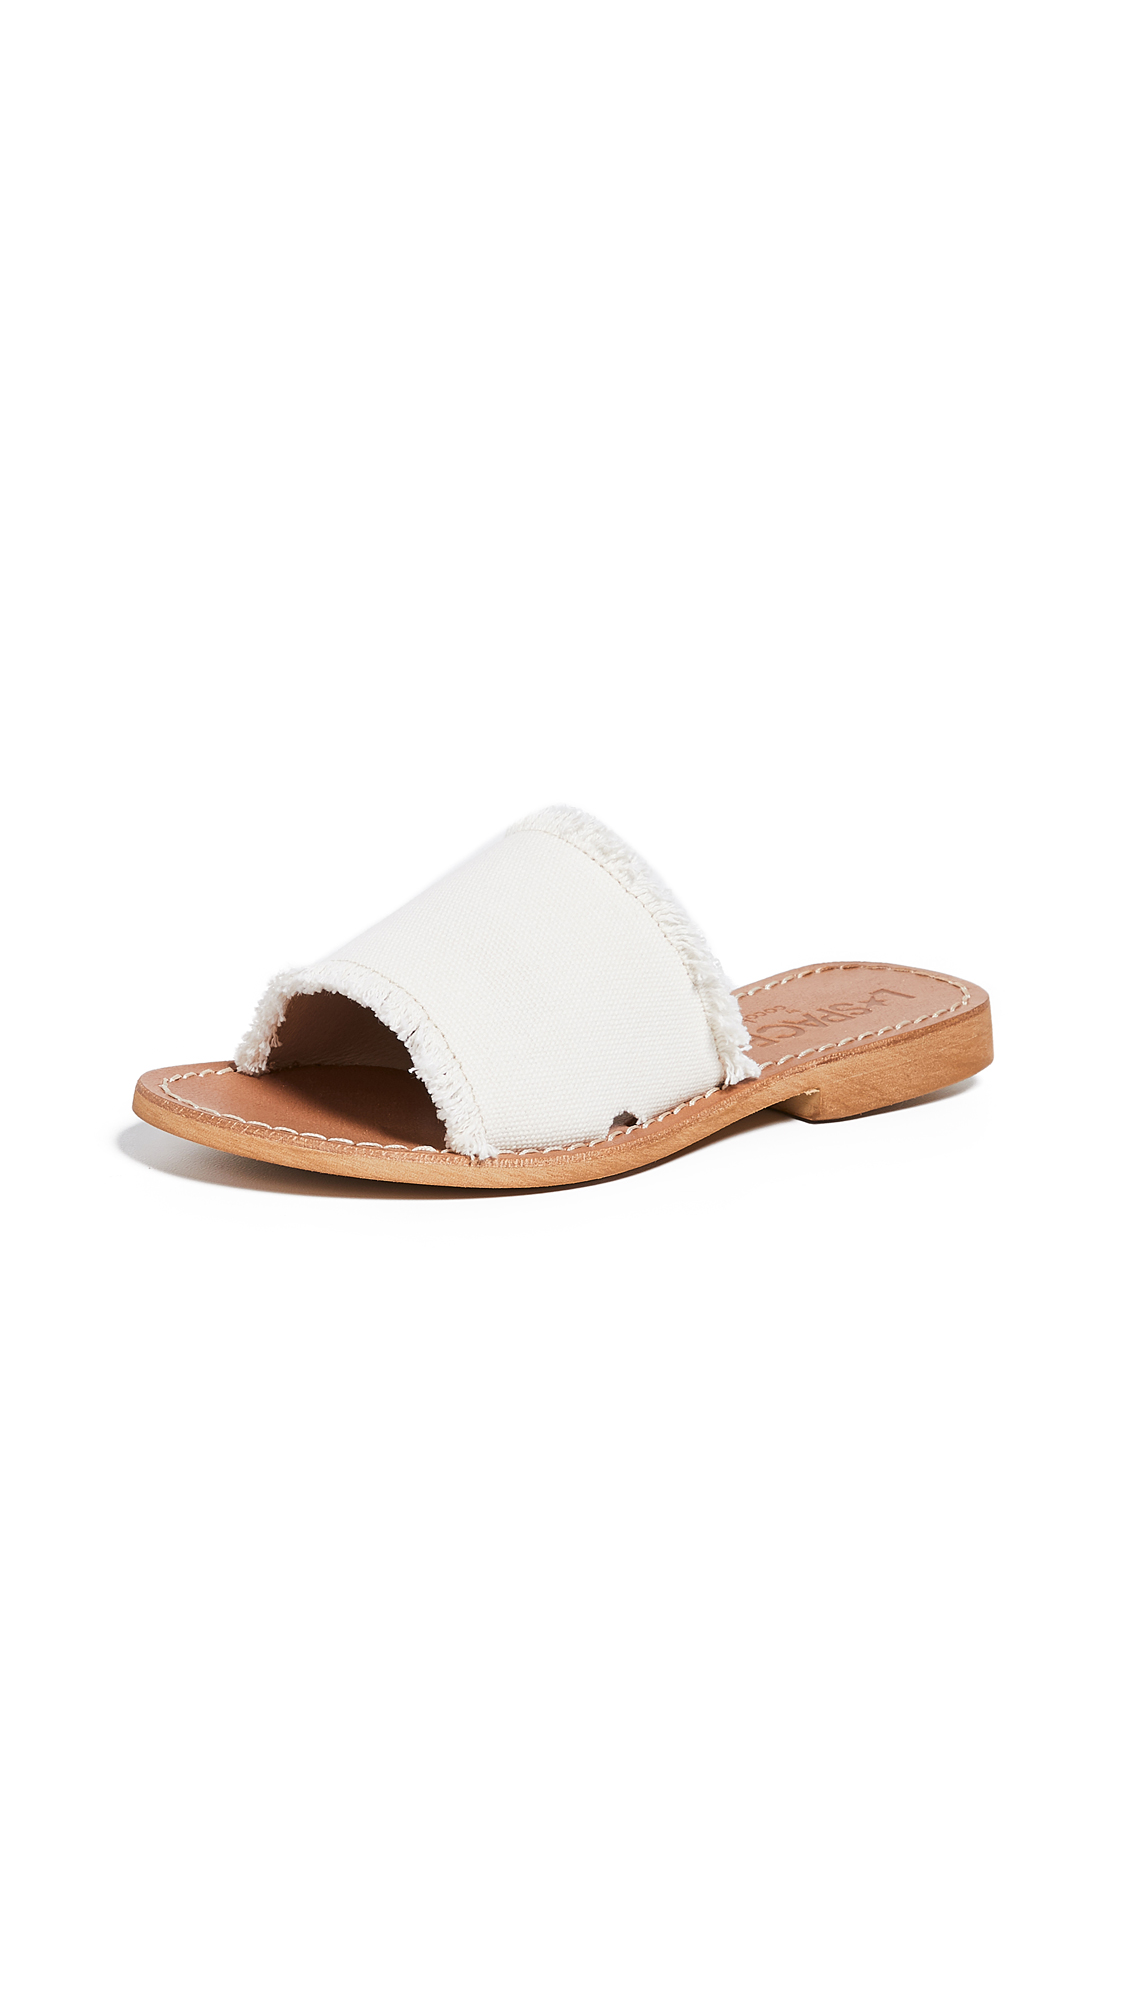 Cocobelle x L*Space Sunday Slides - Ivory